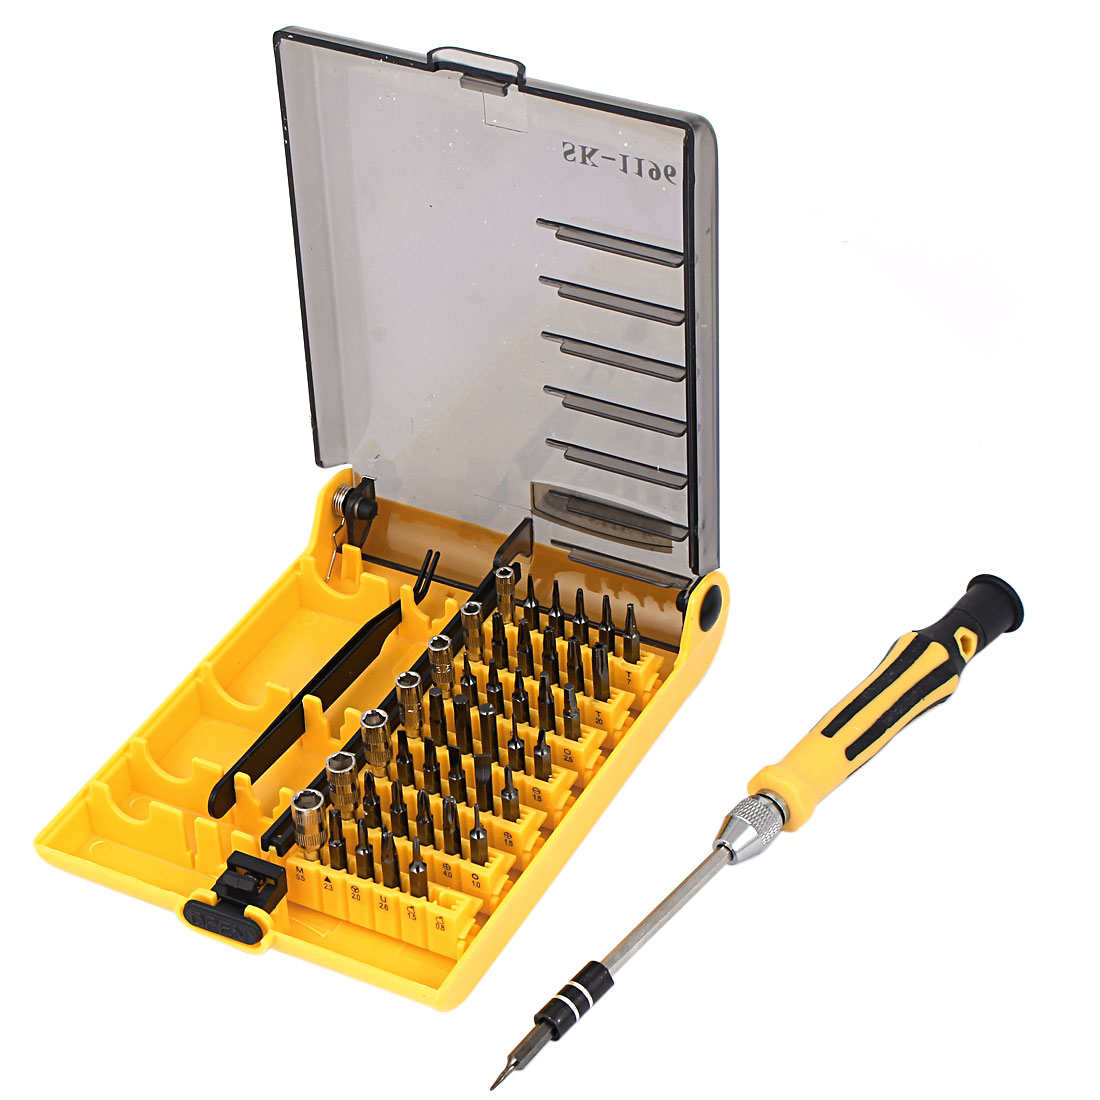 Electronic 45 in 1 Hex Socket Bit Screwdriver Bits Tool